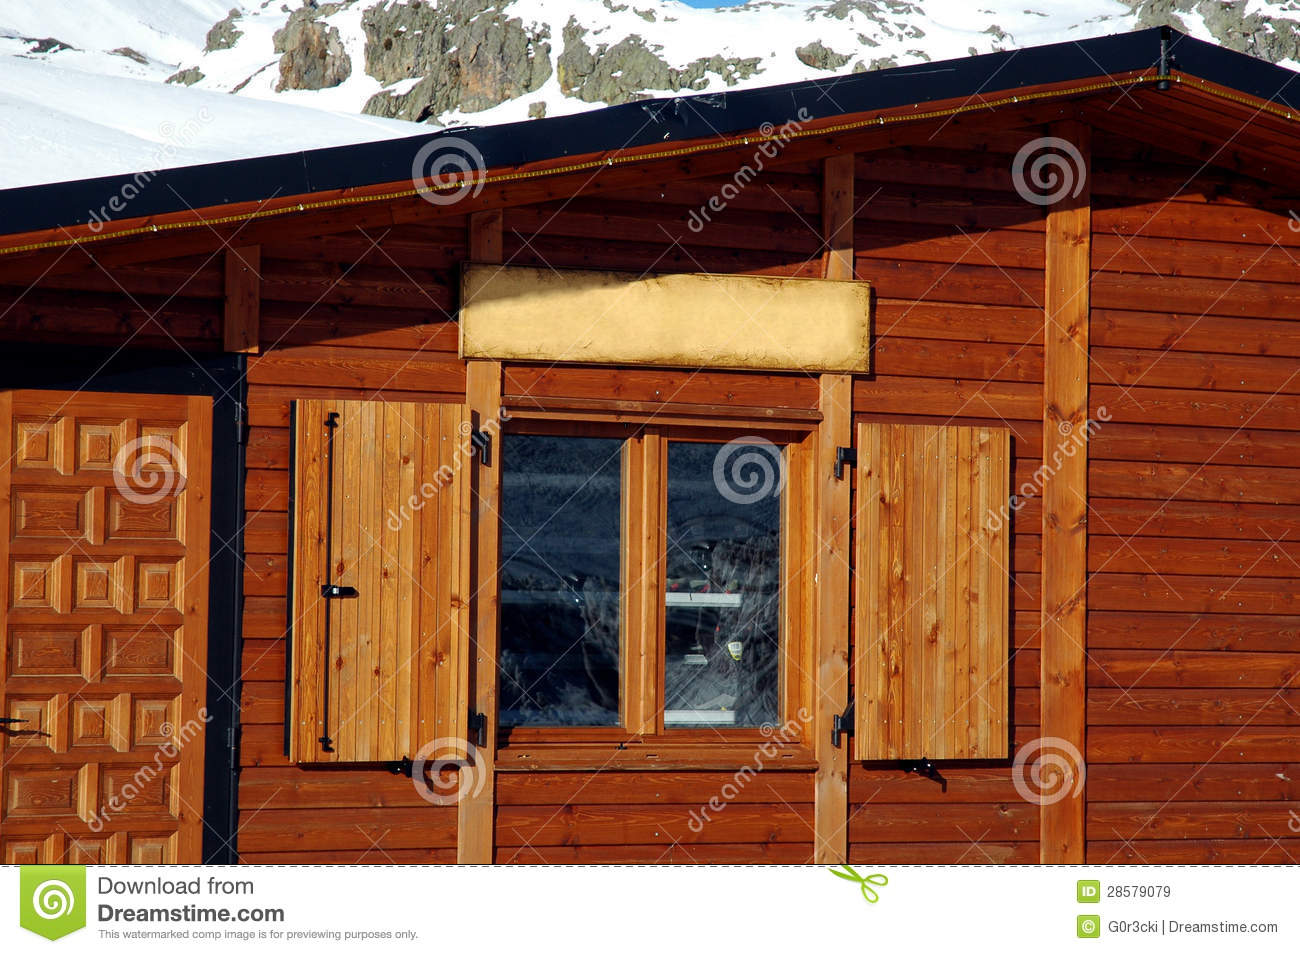 Log cabin window snowy mountains background stock image for Windows for log cabins